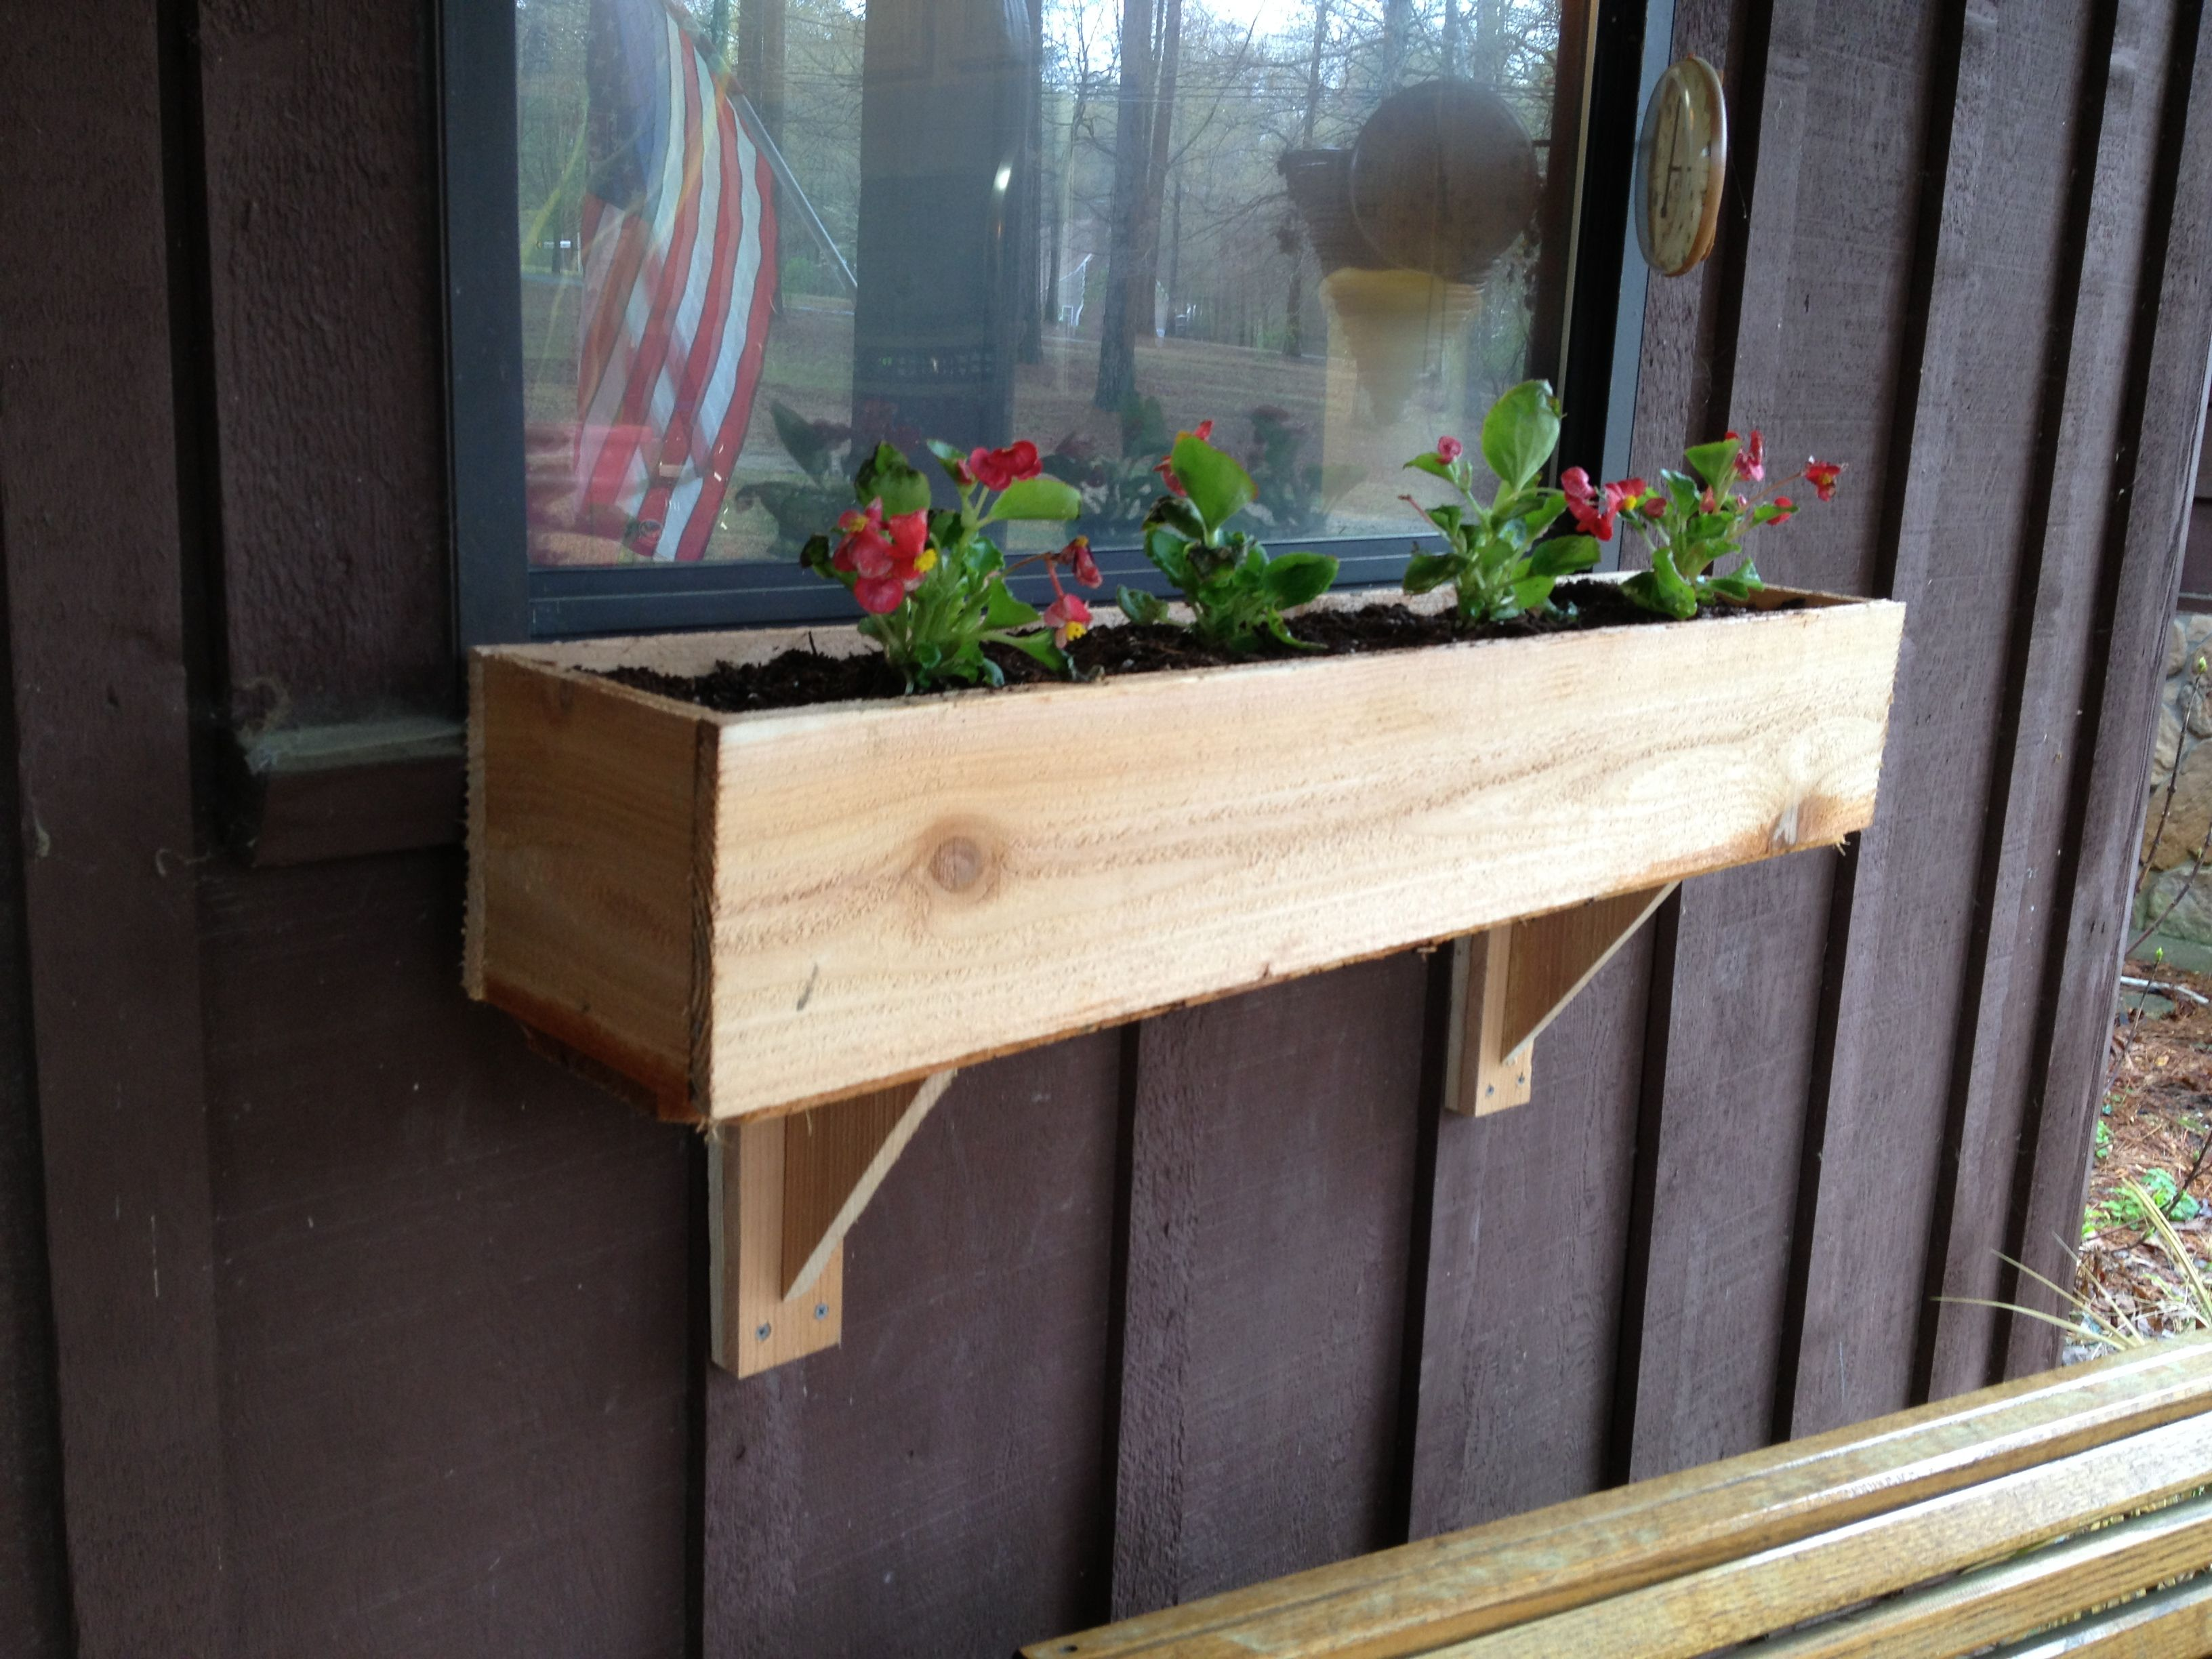 Diy Window Flower Box And Supports For Under 5 2 Hours Made Out